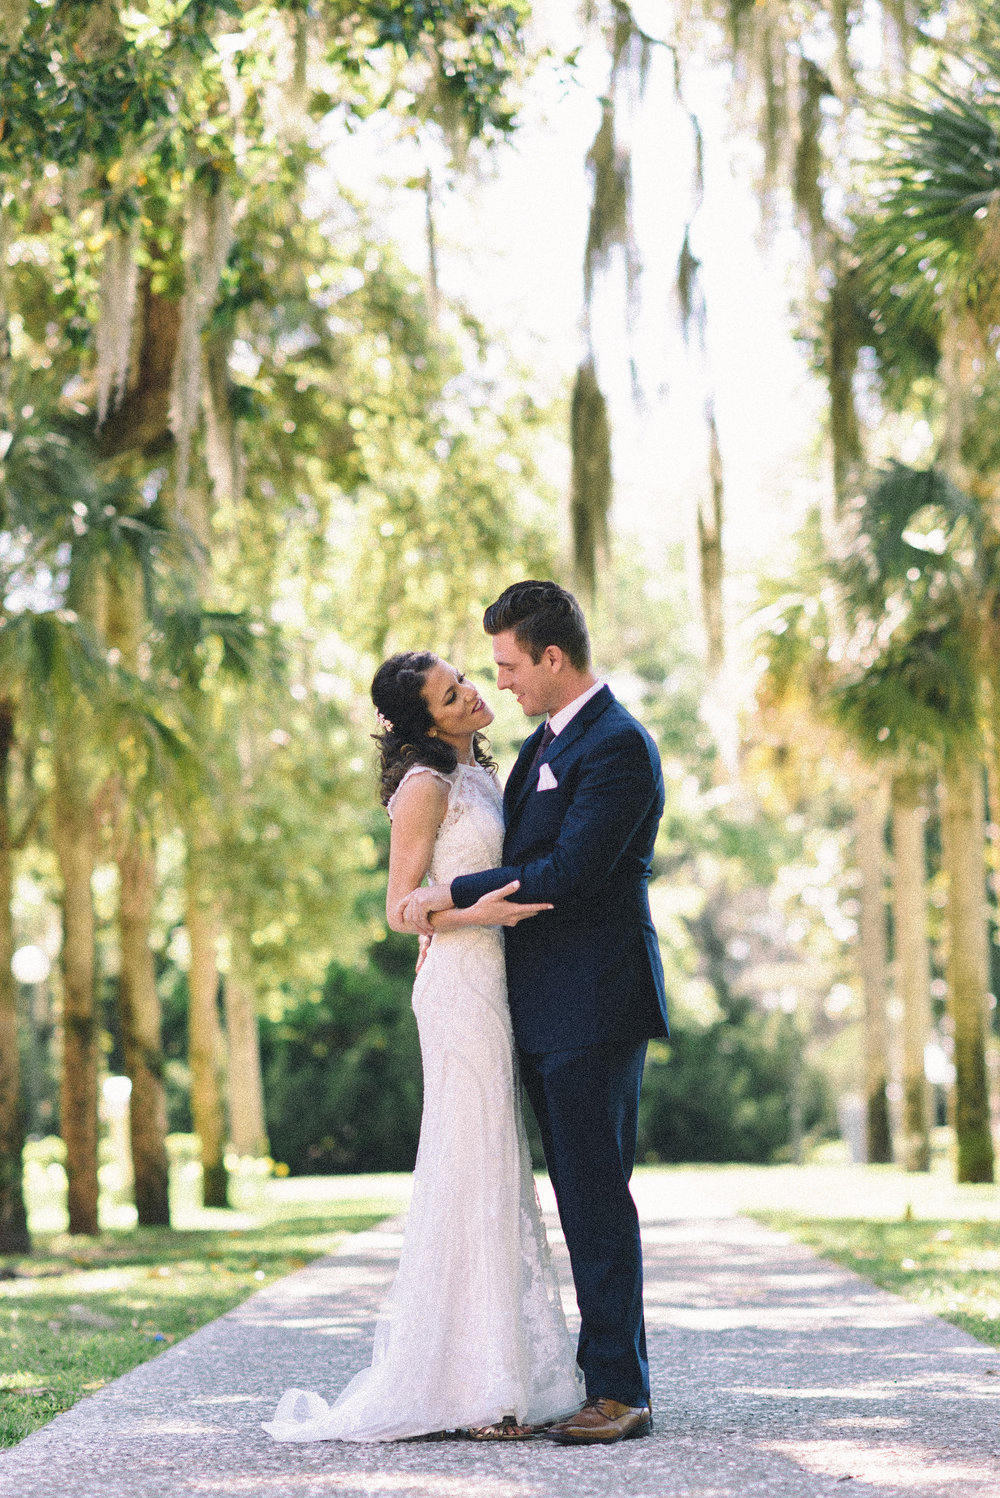 Kadi + Matt's Jekyll Island, Georgia wedding at Moss Creek by Meghan Newsome Photography